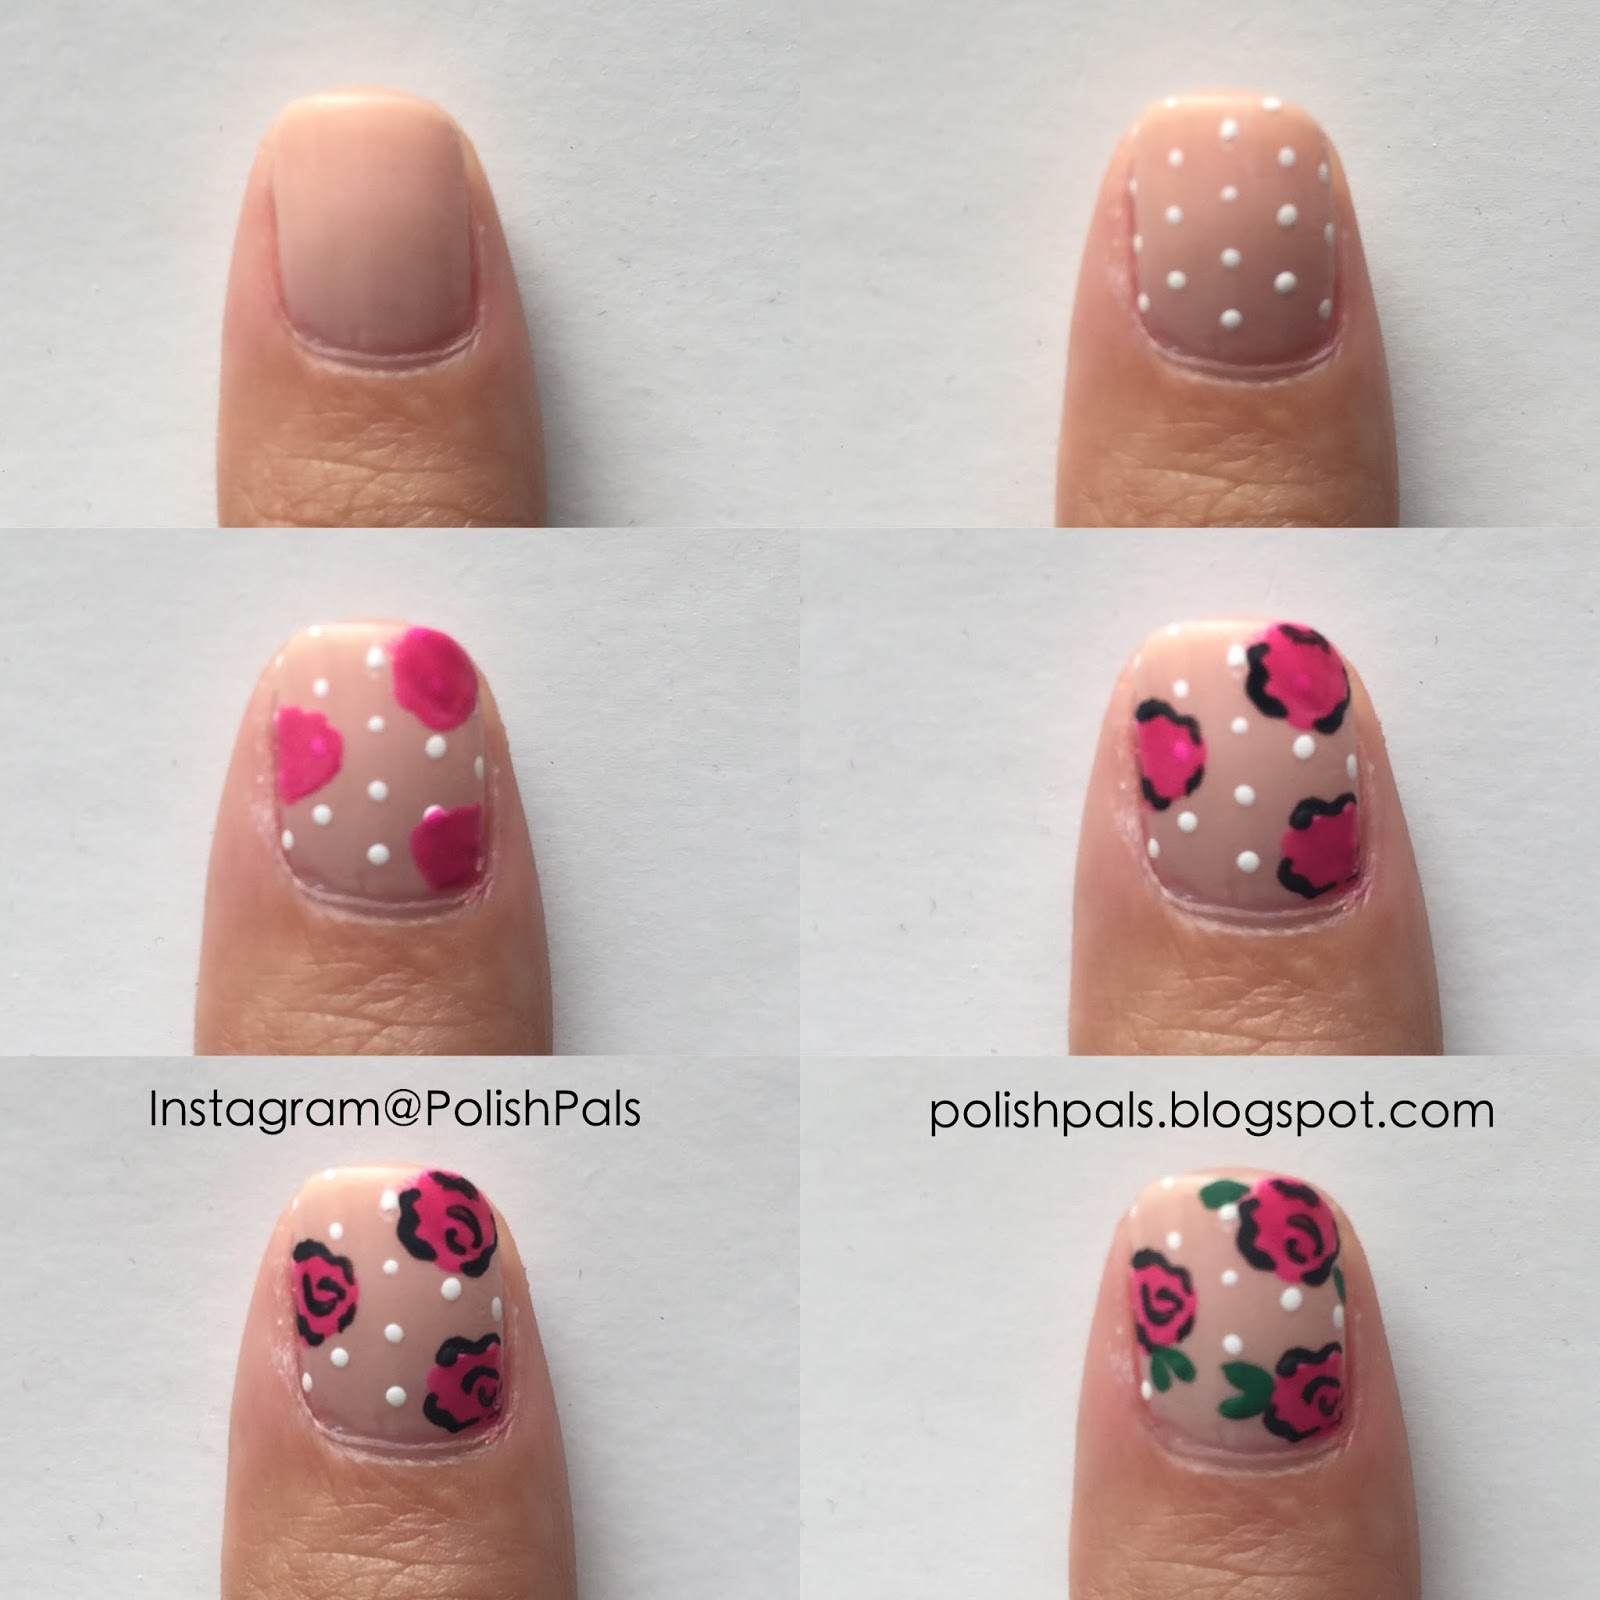 Polish pals dainty rose nails tutorial ah here is my rose nail art tutorial the polka dot step is optional if you dont like them but i wouldnt dare go without them for these dainty roses prinsesfo Gallery